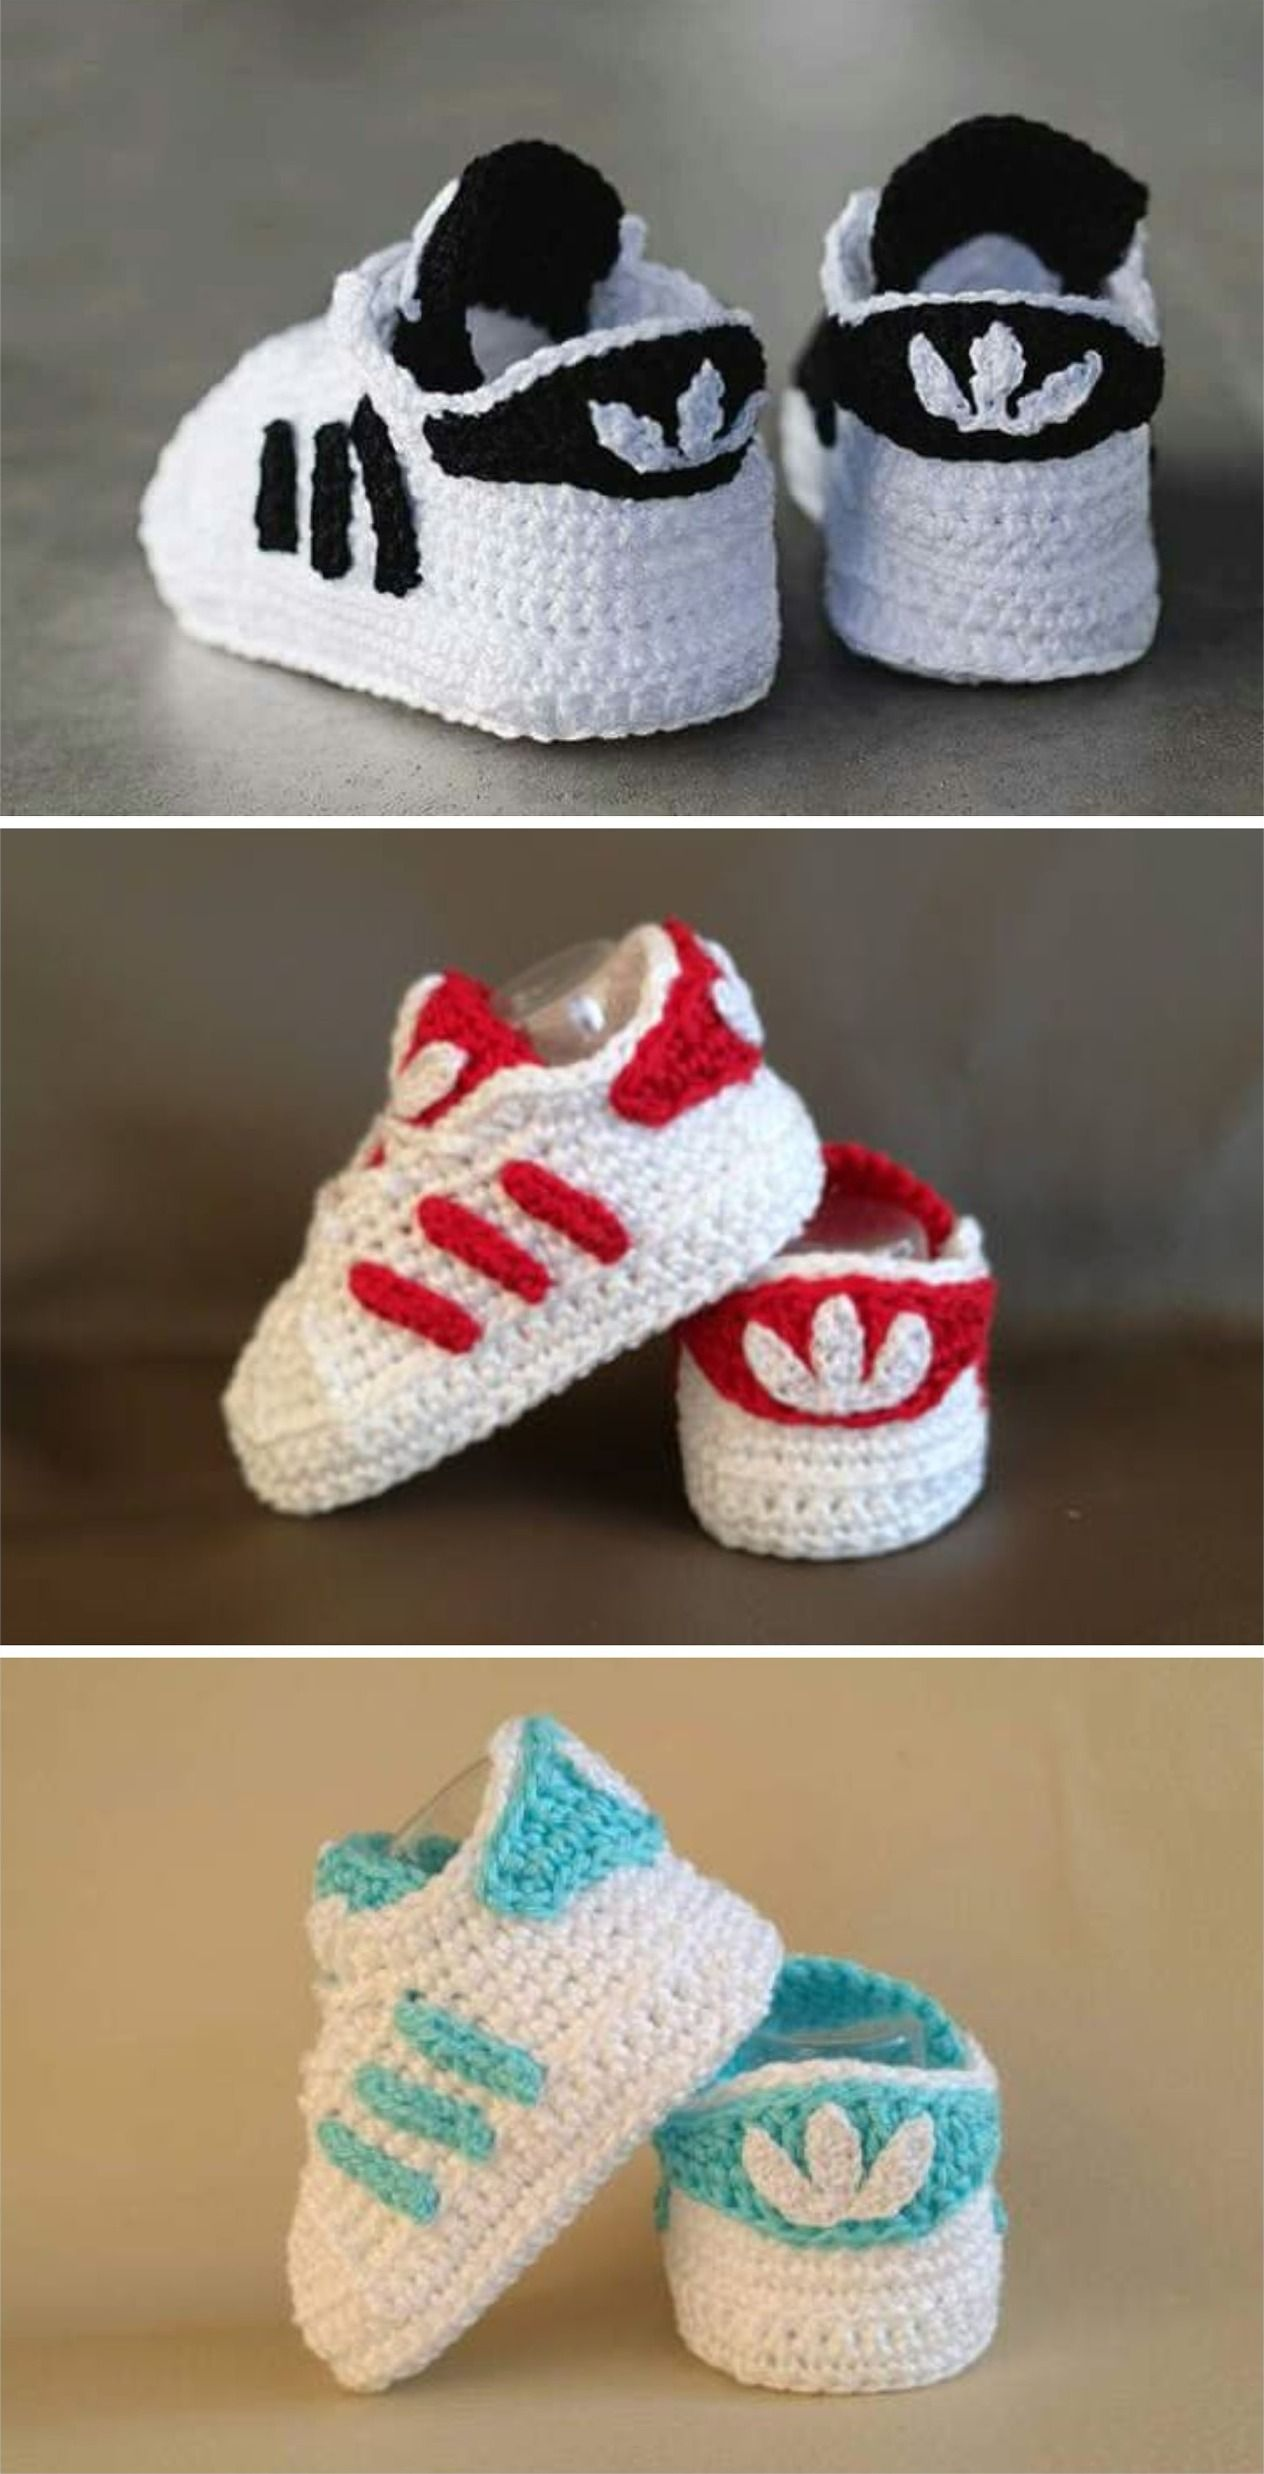 Crochet Baby Superstars #crochetbabyboots